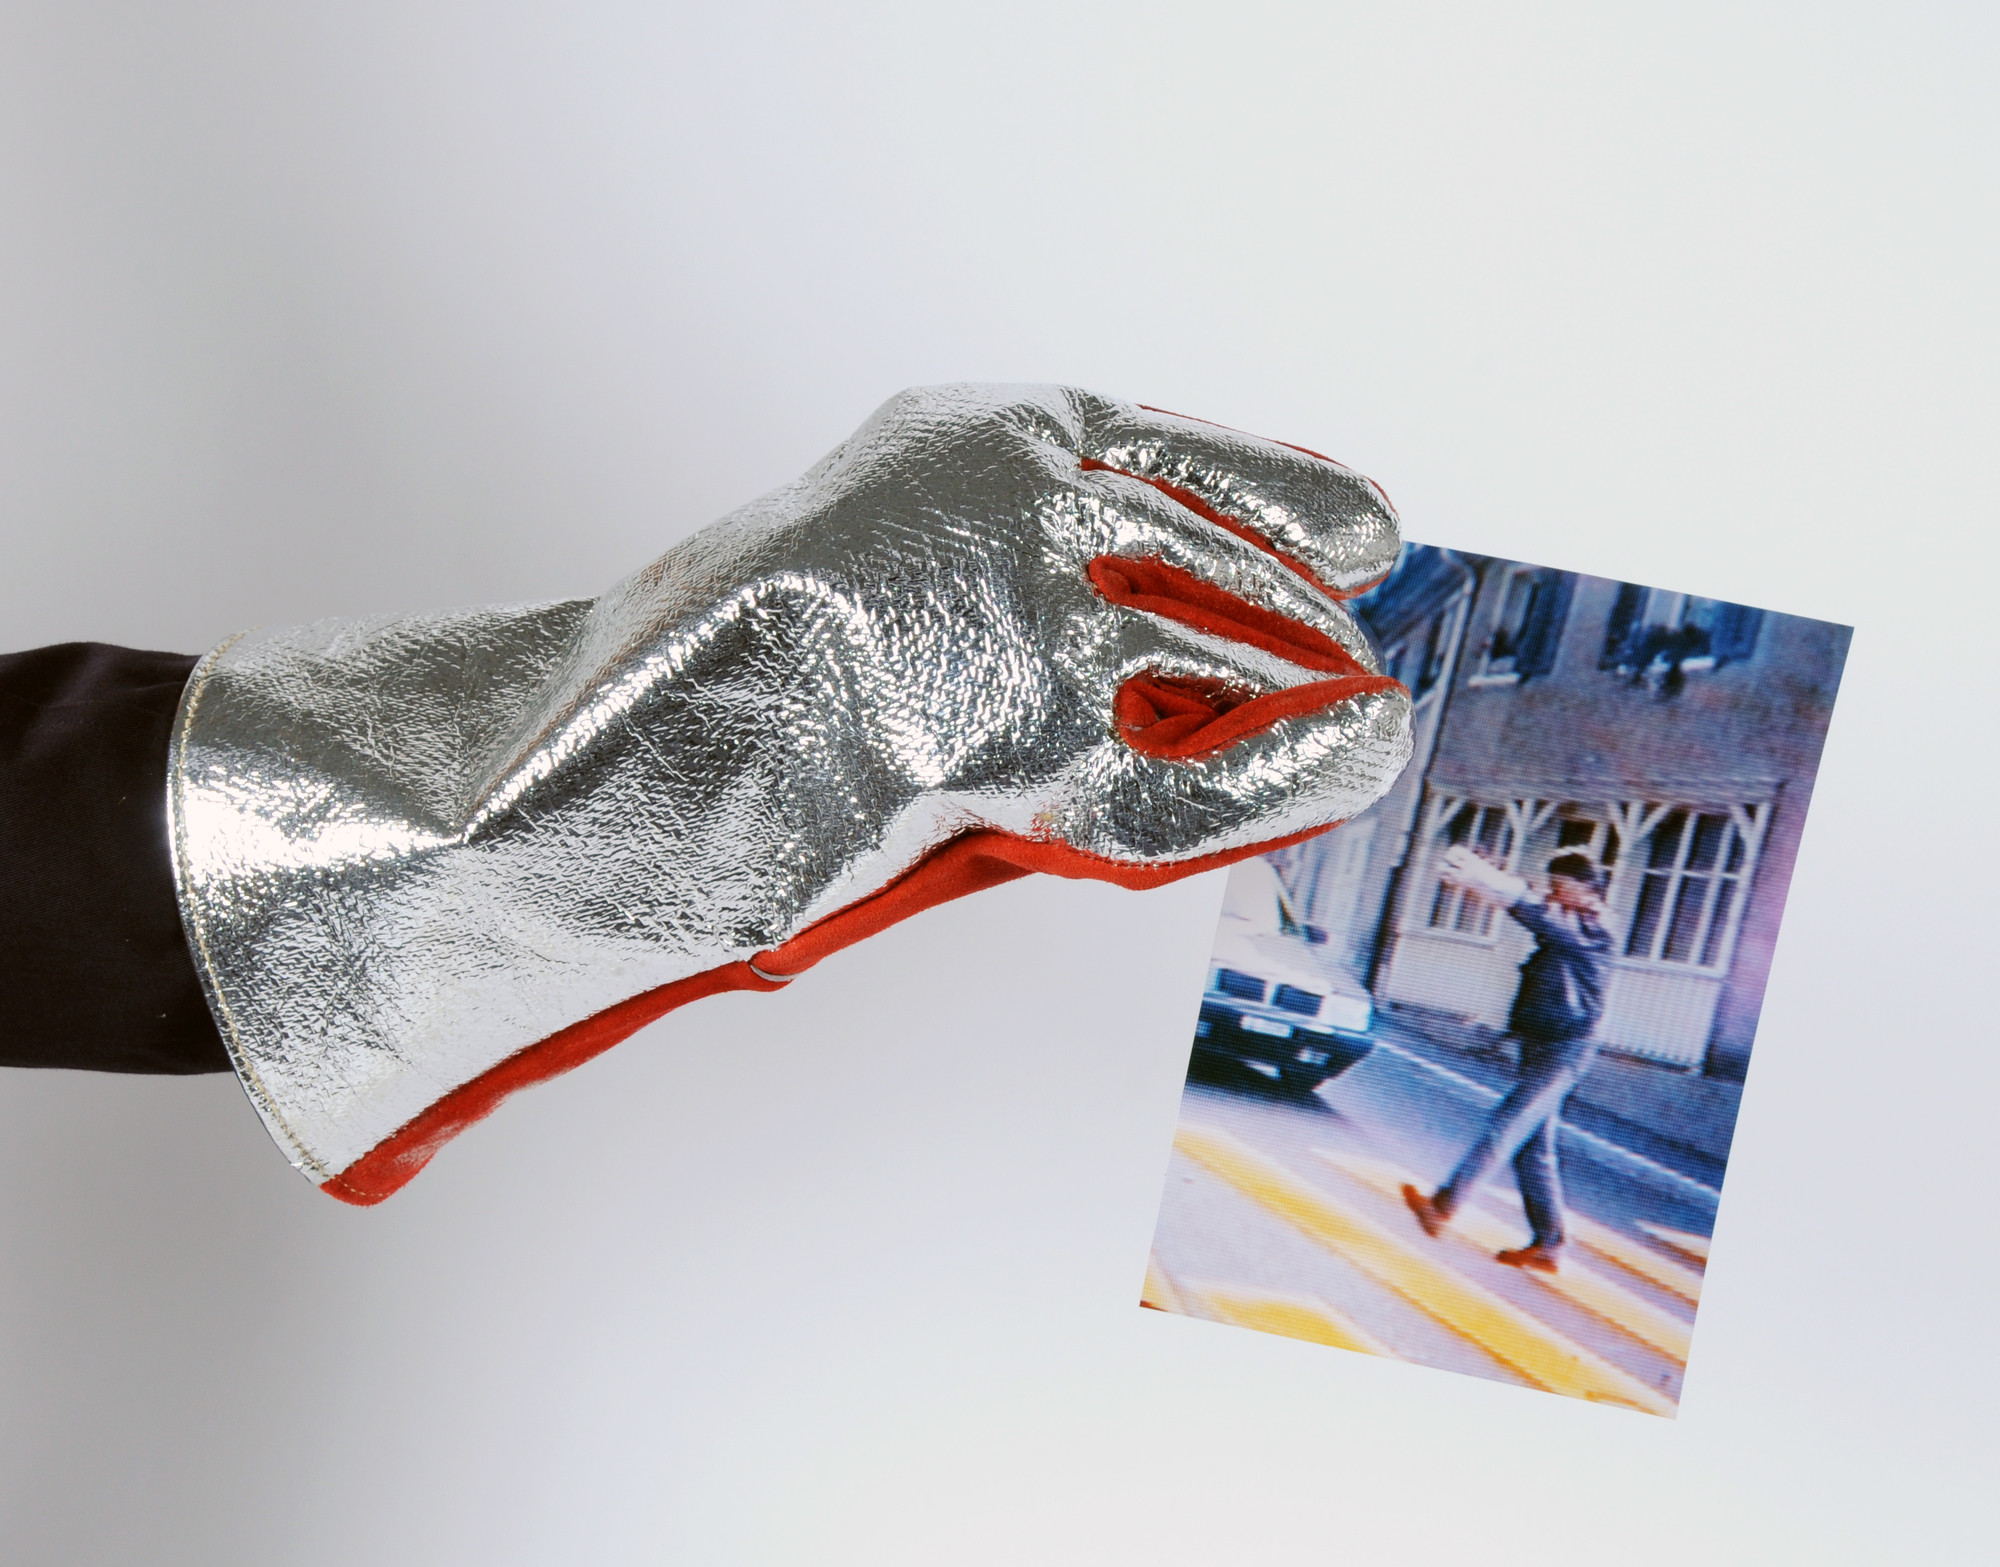 Signer Roman, Firefighter Glove with Photograph